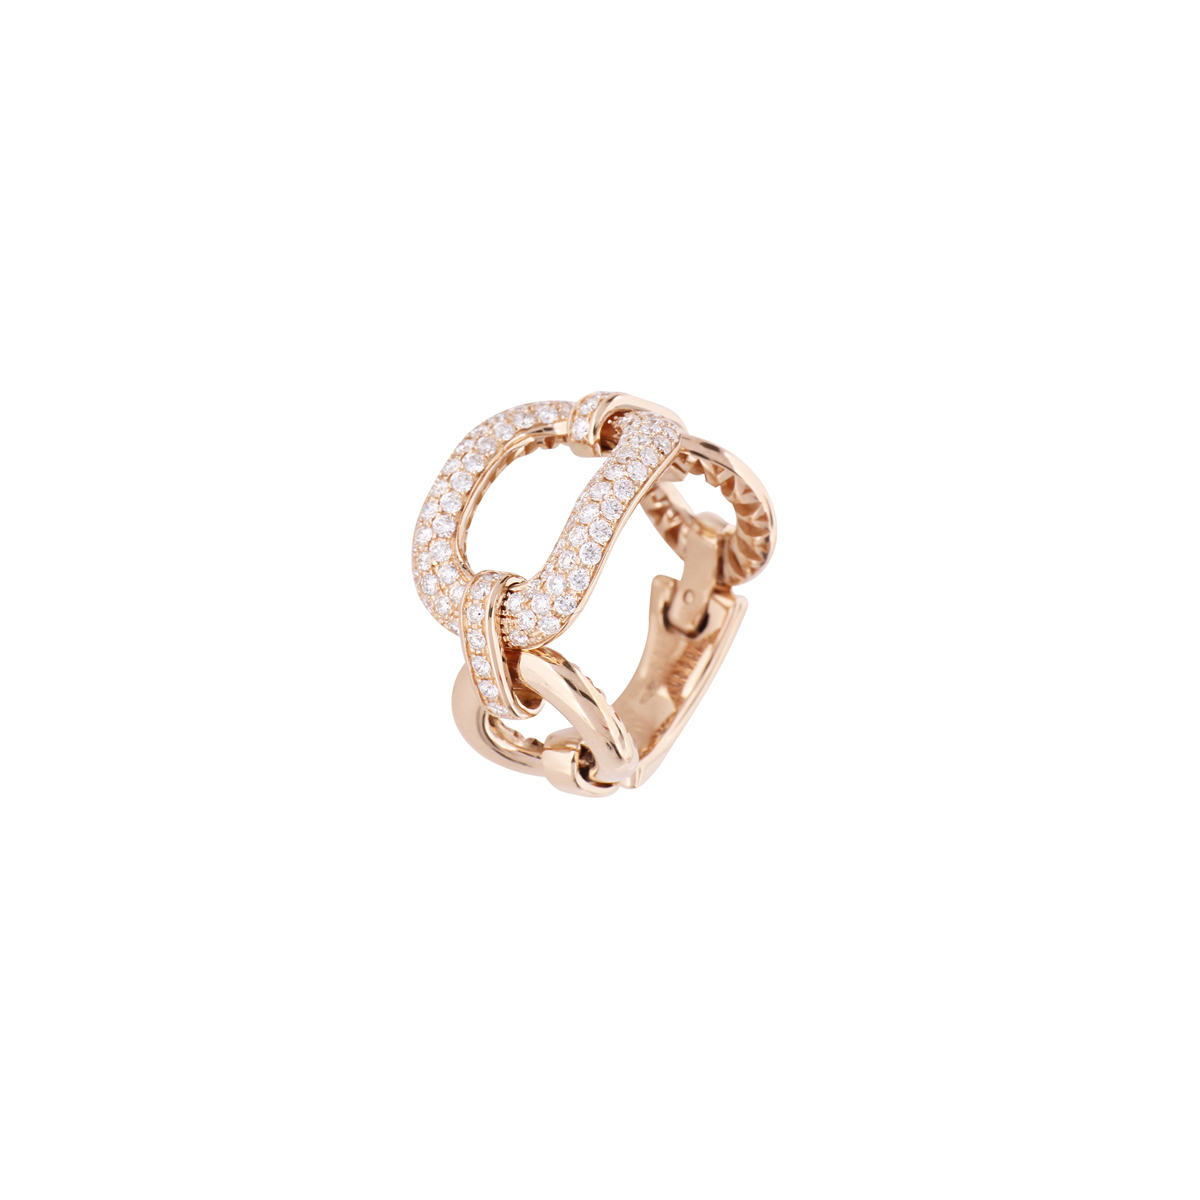 Red Gold and Diamond Chain Ring